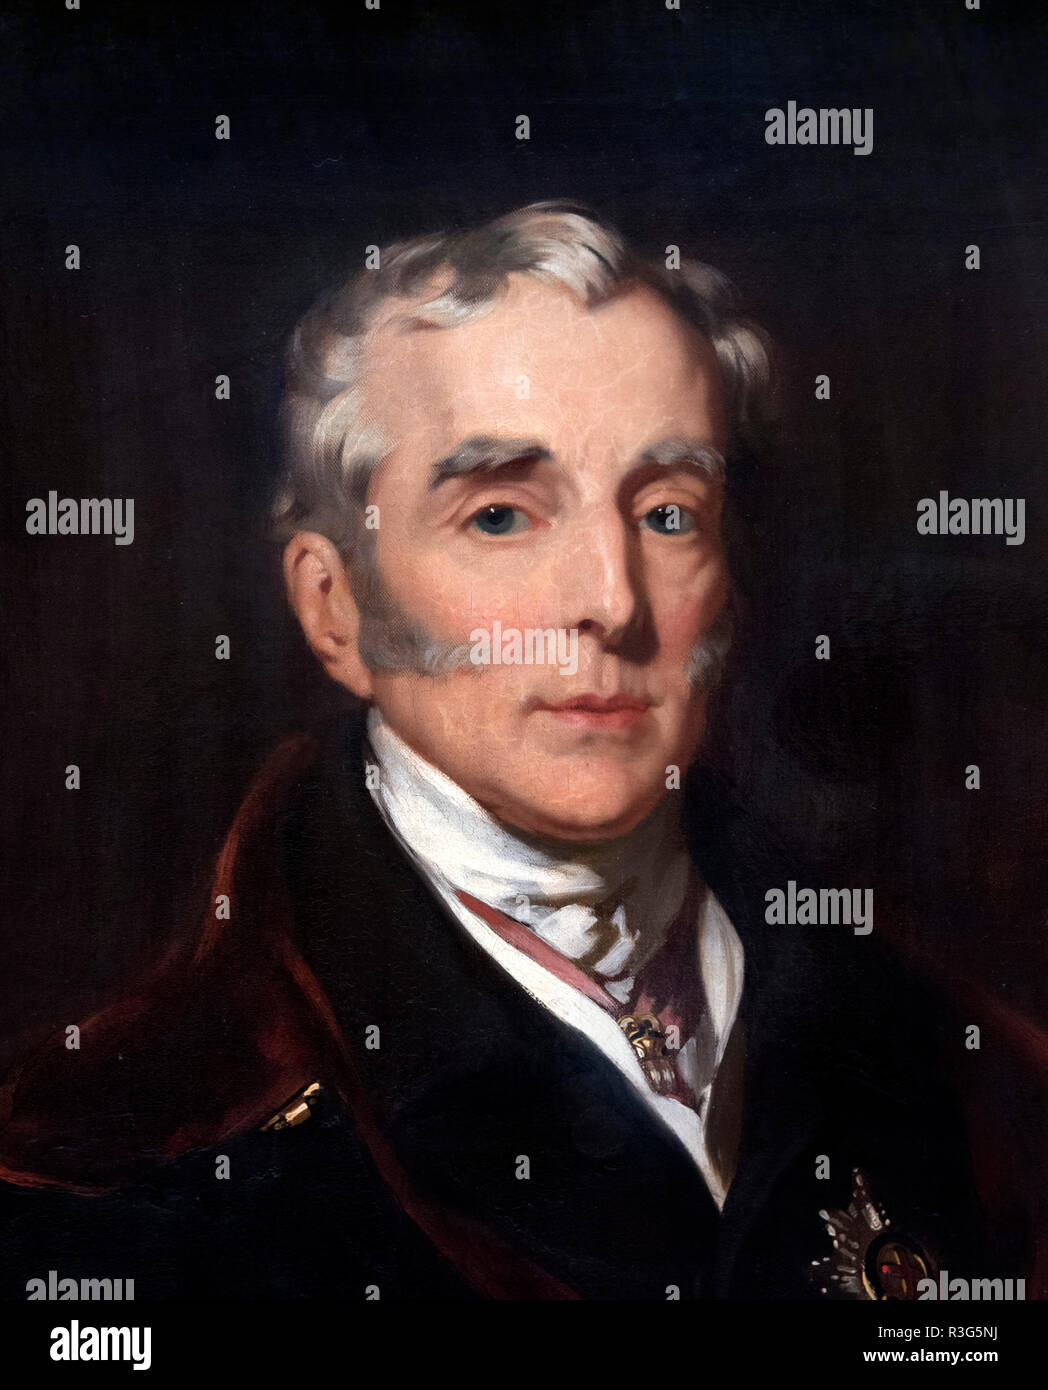 Duke of Wellington, portrait by John Lucas, oil on canvas, 1839. Detail from a larger painting, R3G5NA - Stock Image